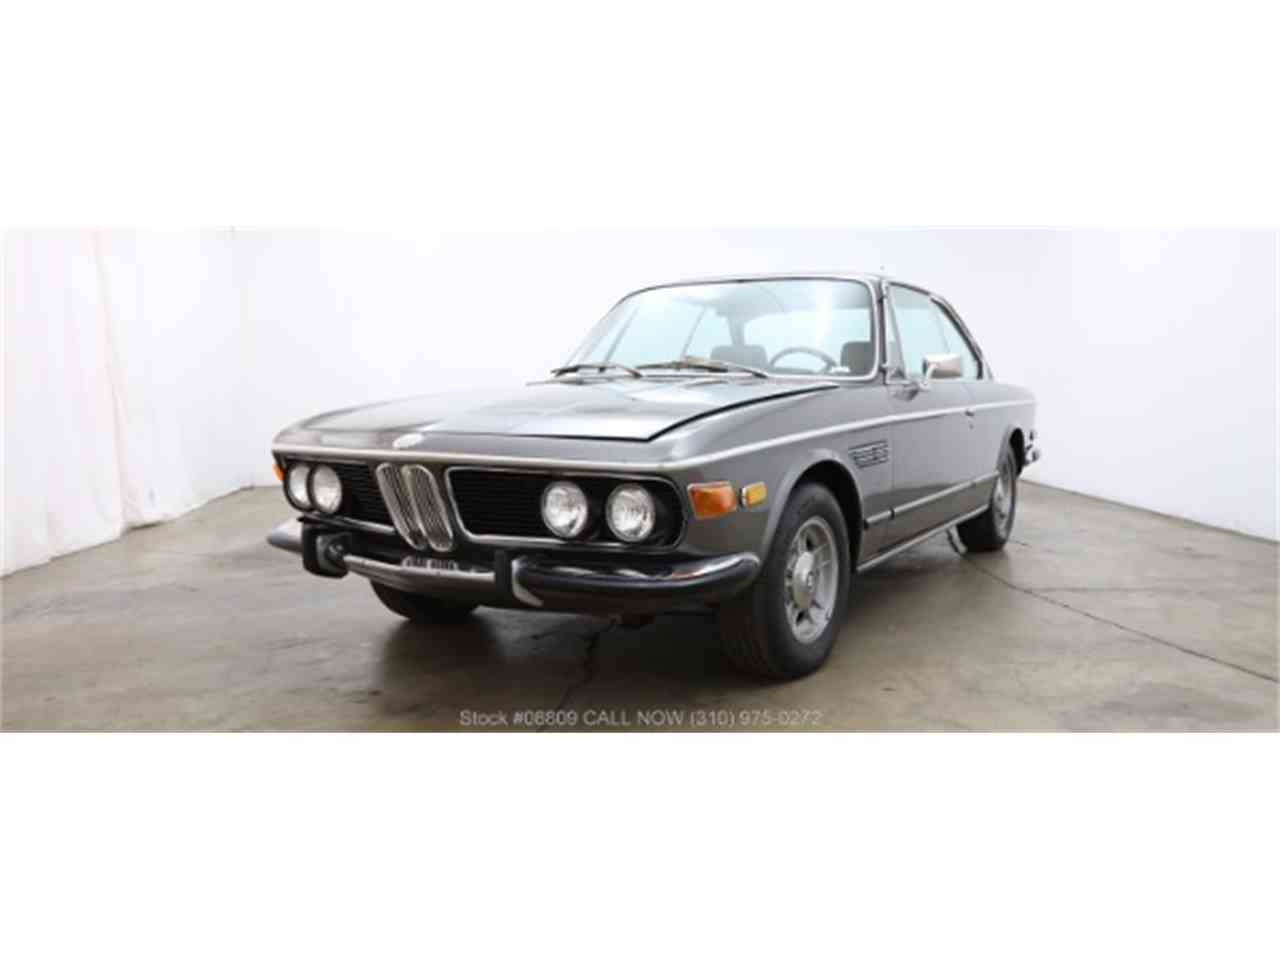 Large Picture of 1970 BMW 2800CS located in California - $24,750.00 - MACE